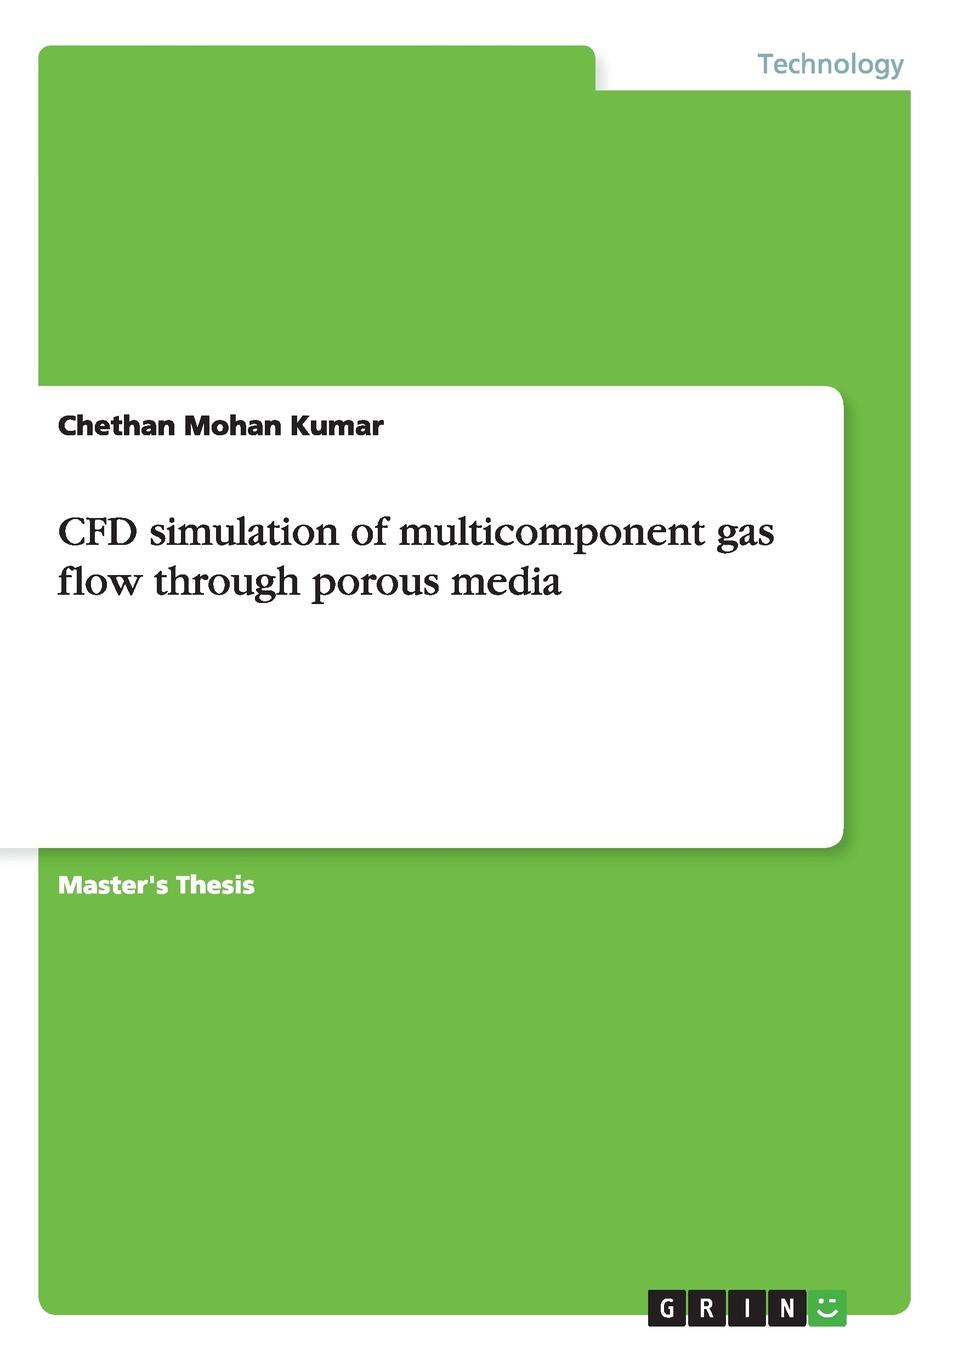 Chethan Mohan Kumar CFD simulation of multicomponent gas flow through porous media the magazine artist the artist's watercolour problem solver